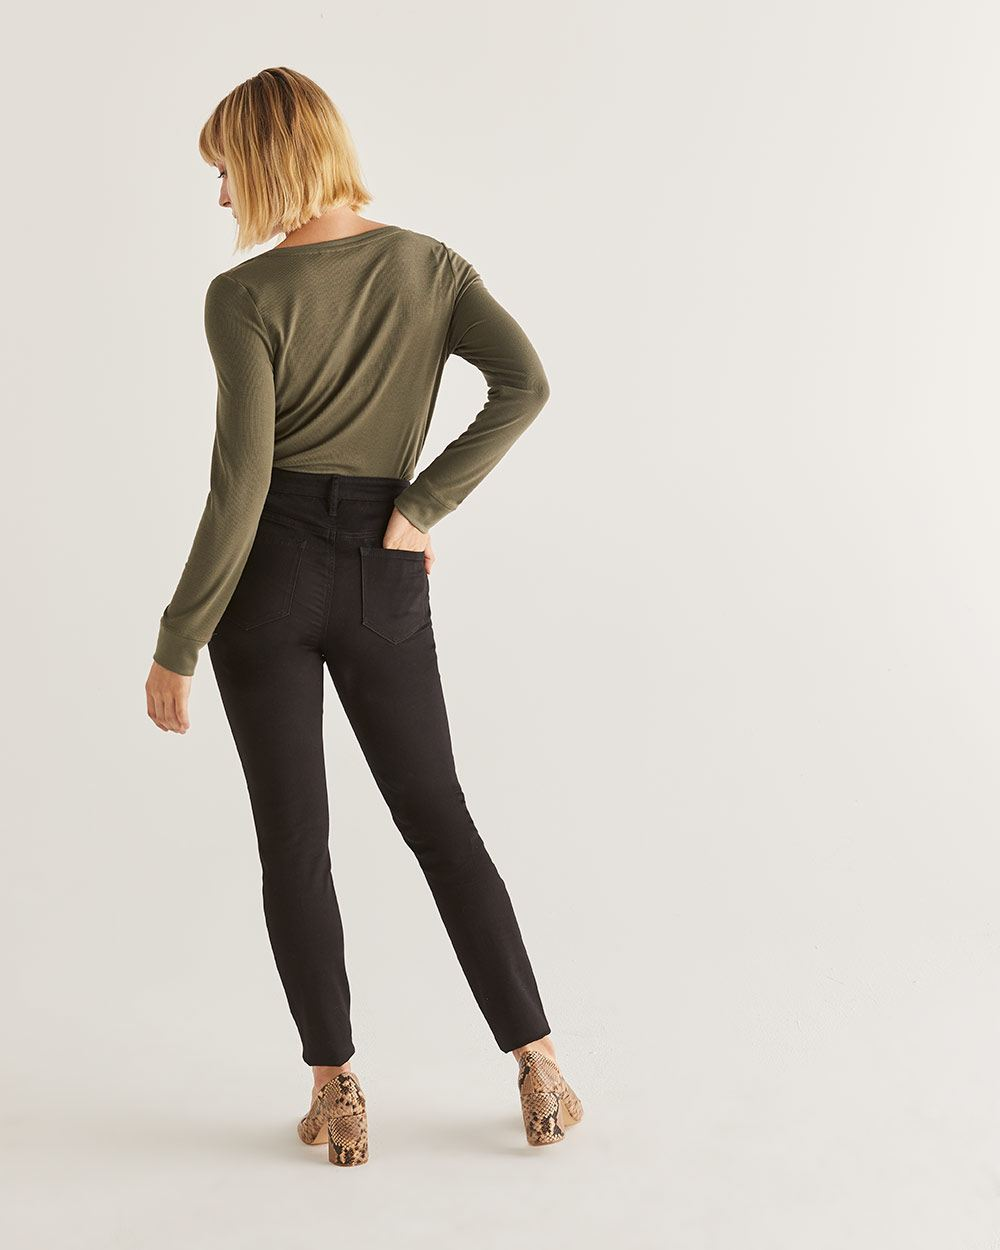 The Signature Soft High Waist Skinny Black Jeans